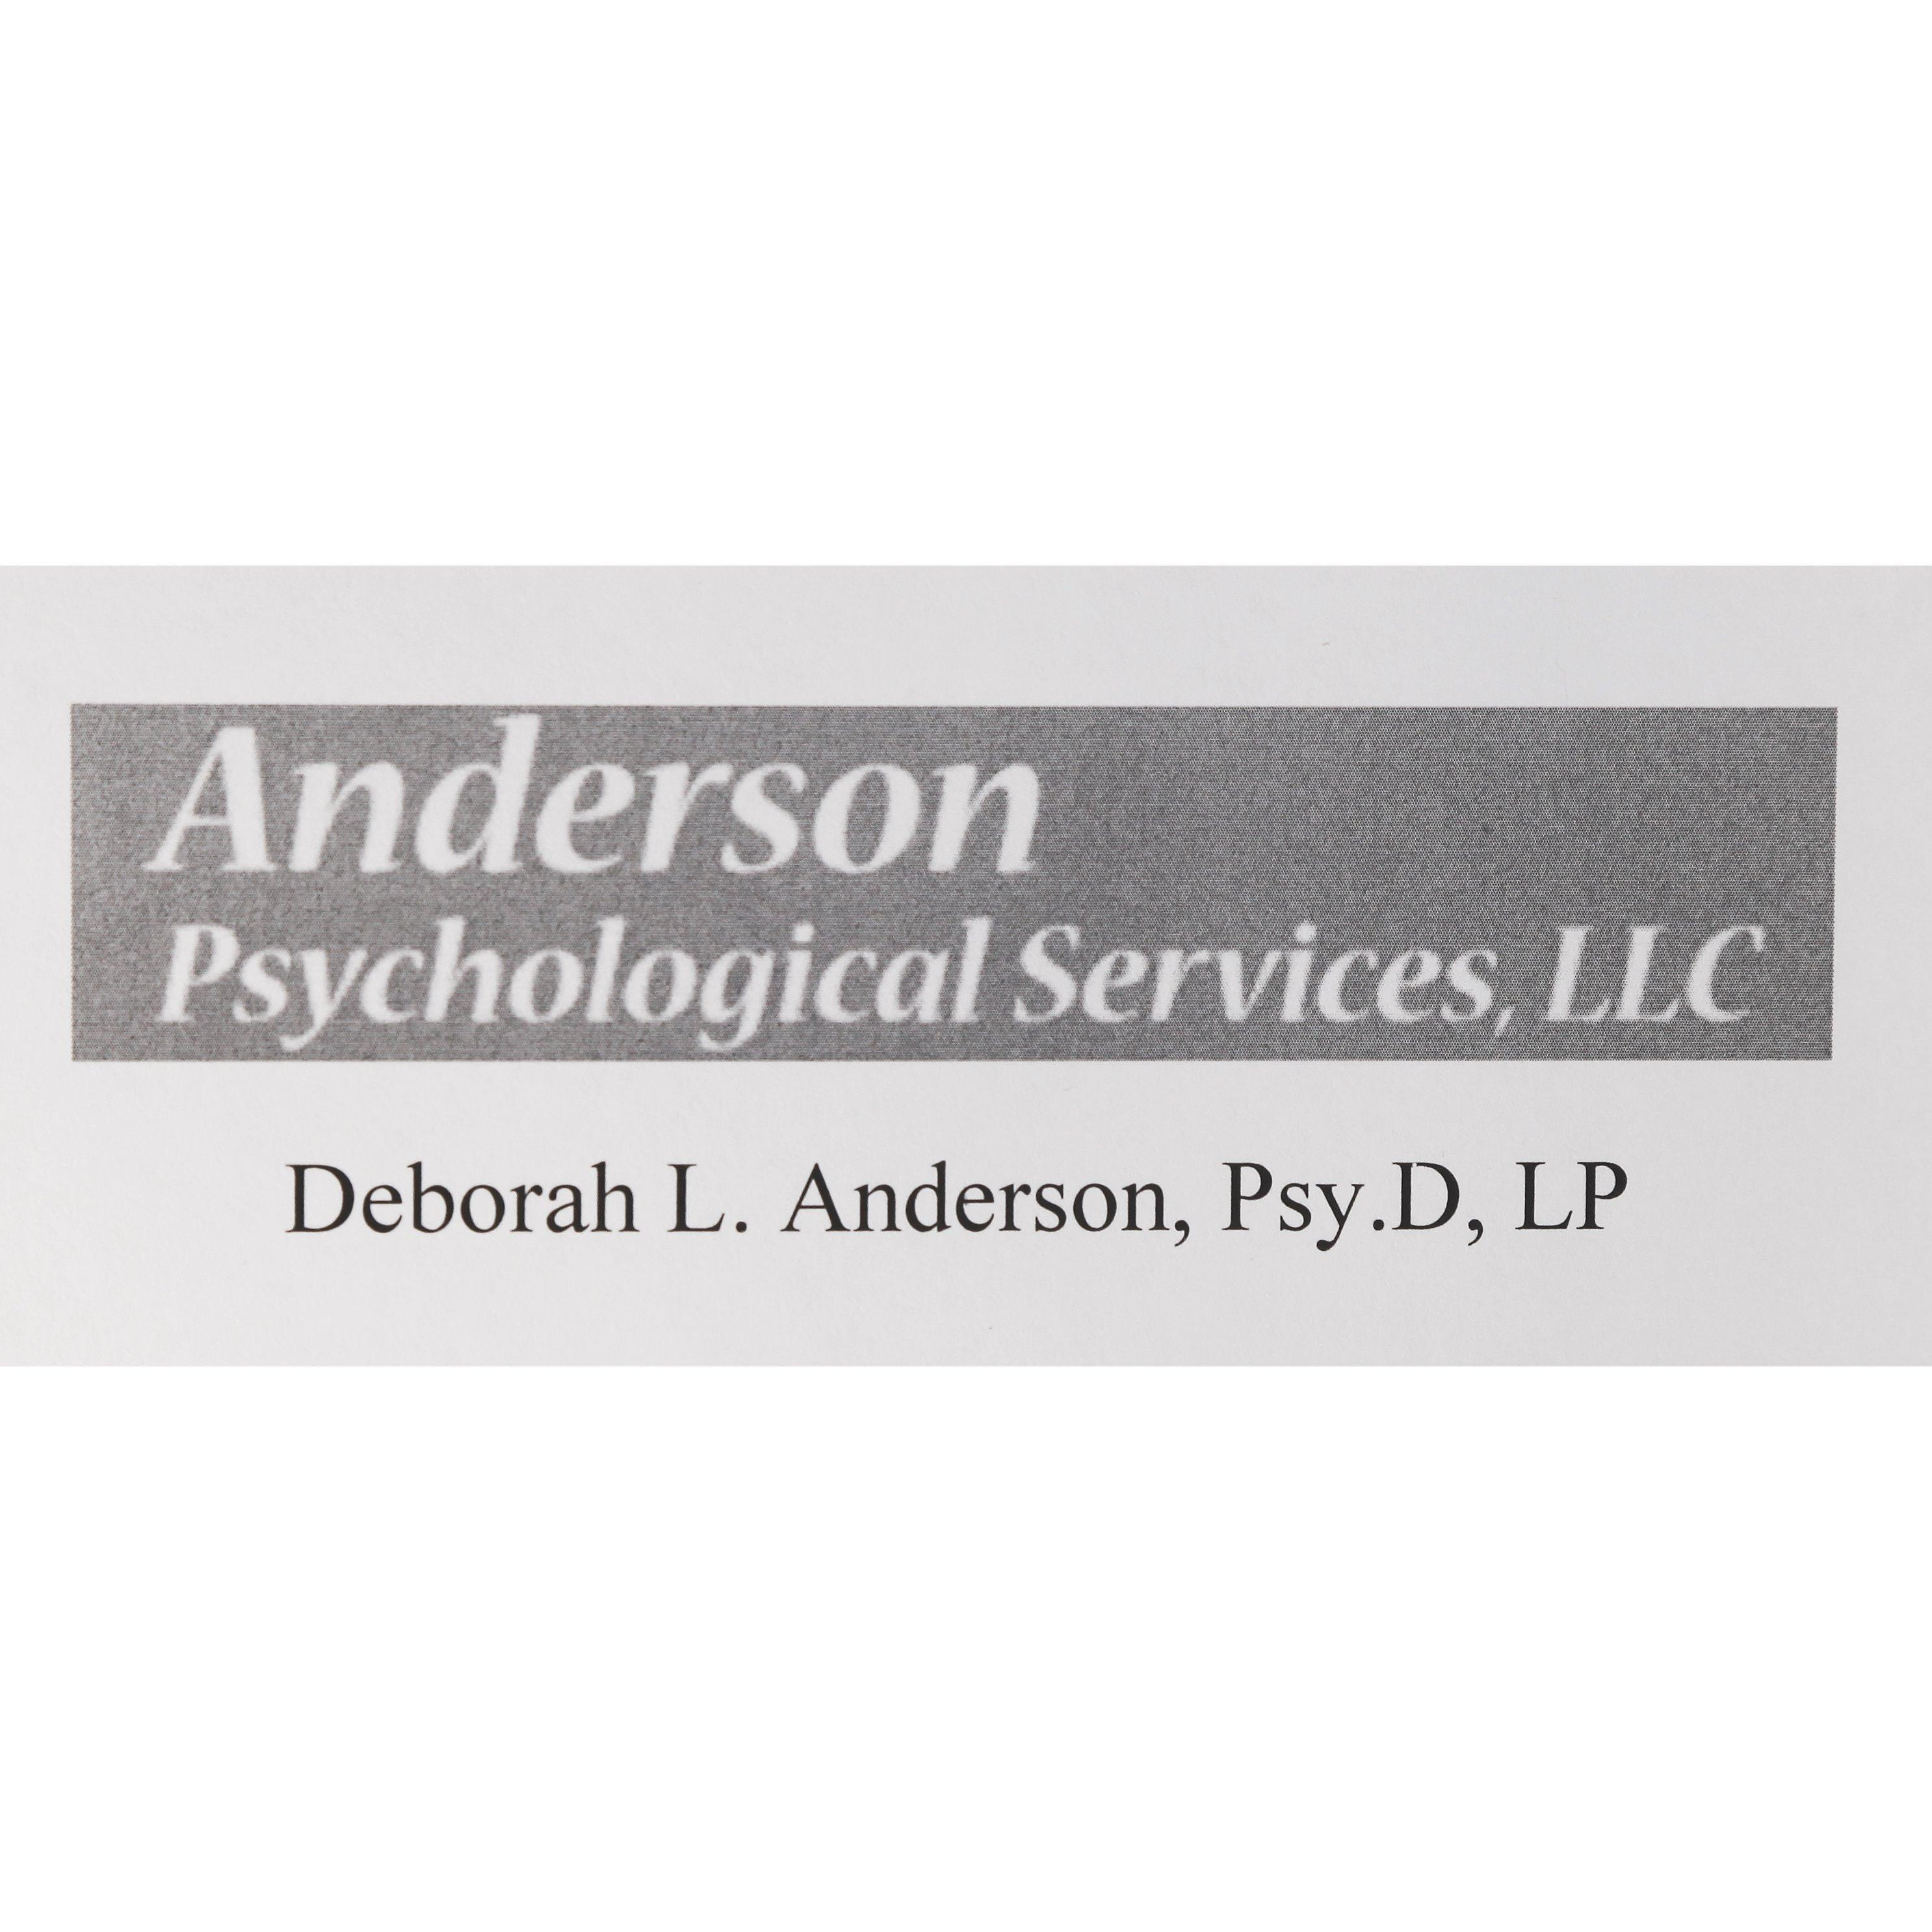 Anderson Psychological Services, LLC